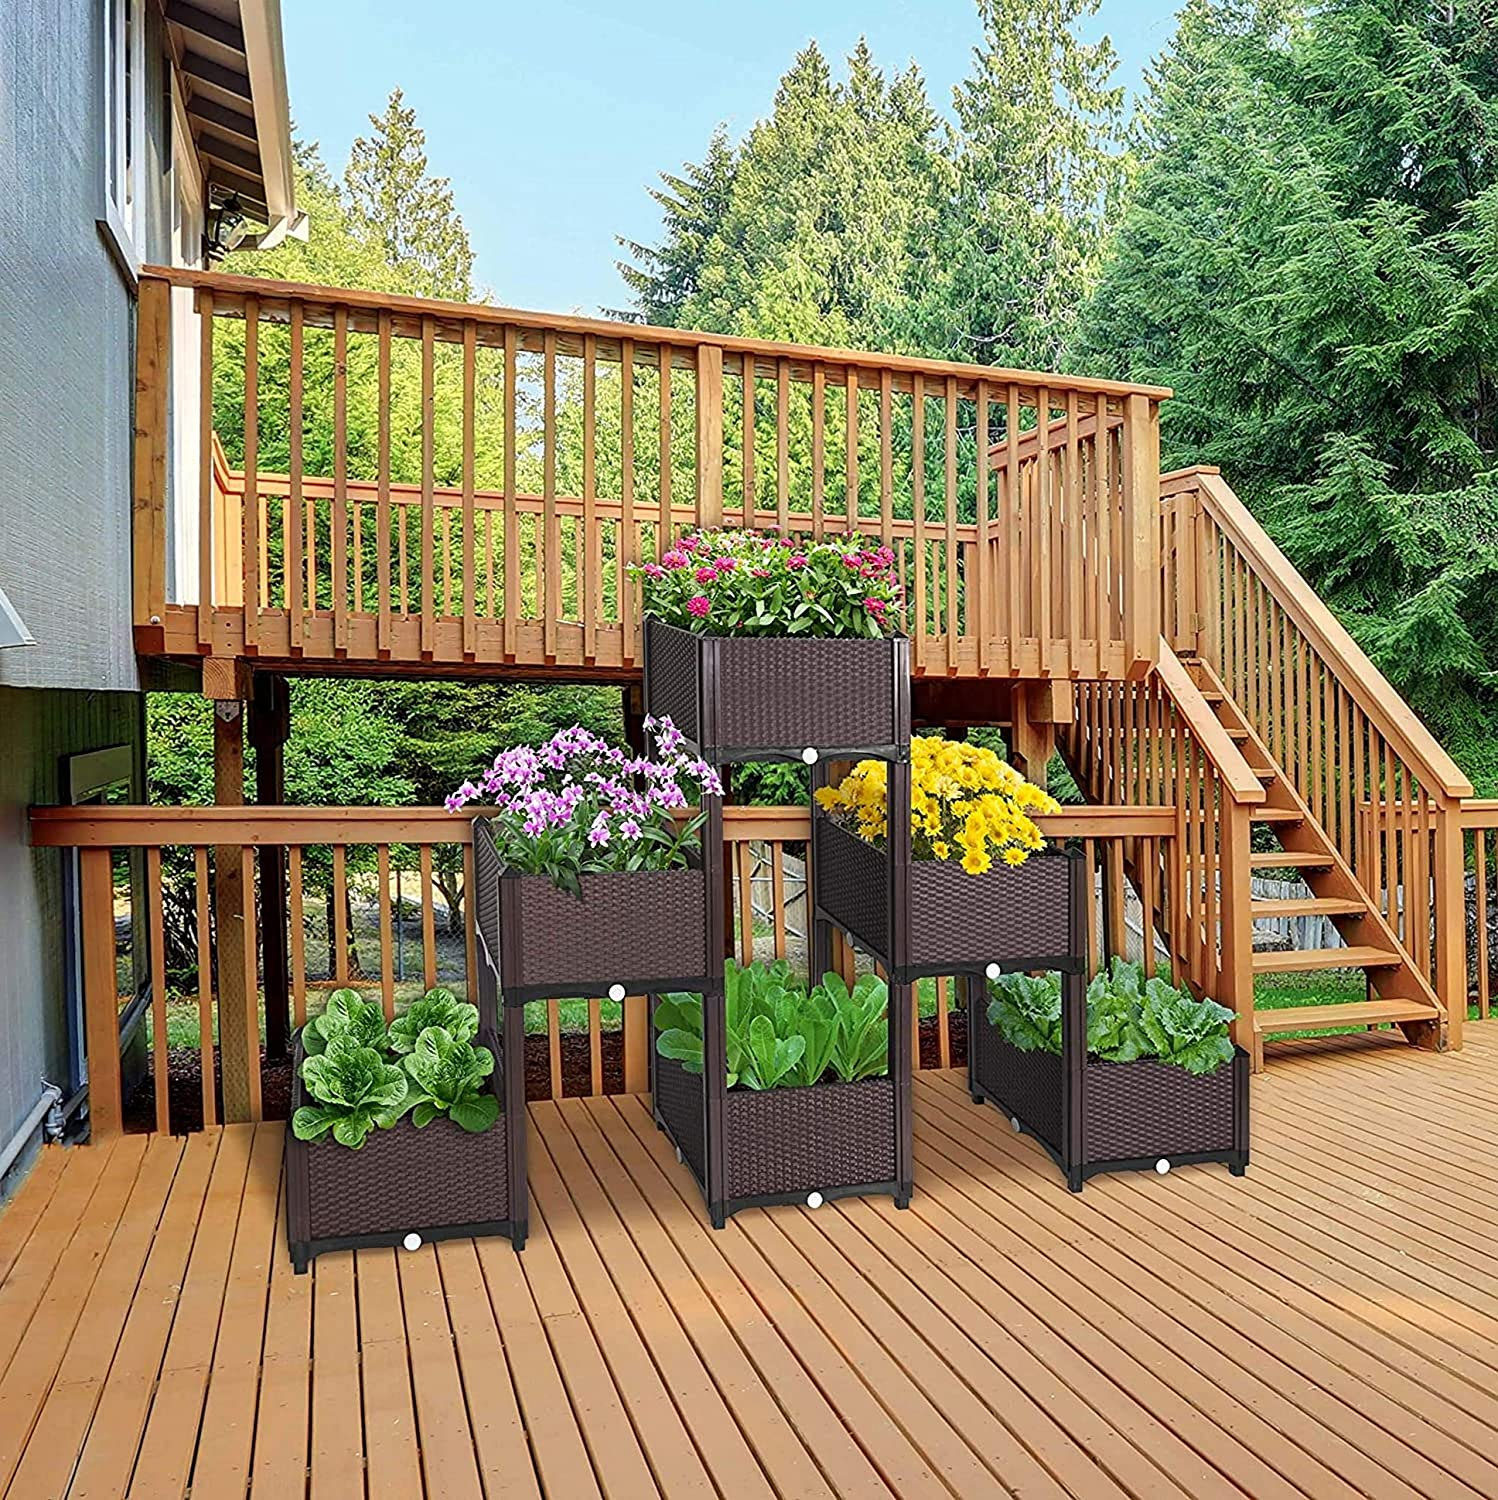 Kingmys Vegetables Plant Raised Bed kits, Elevated Raised Garden Bed Planter box for Flowers Vegetables Fruits Herbs, Outdoor Indoor Planting Box Container for Garden Patio Balcony Restaurant